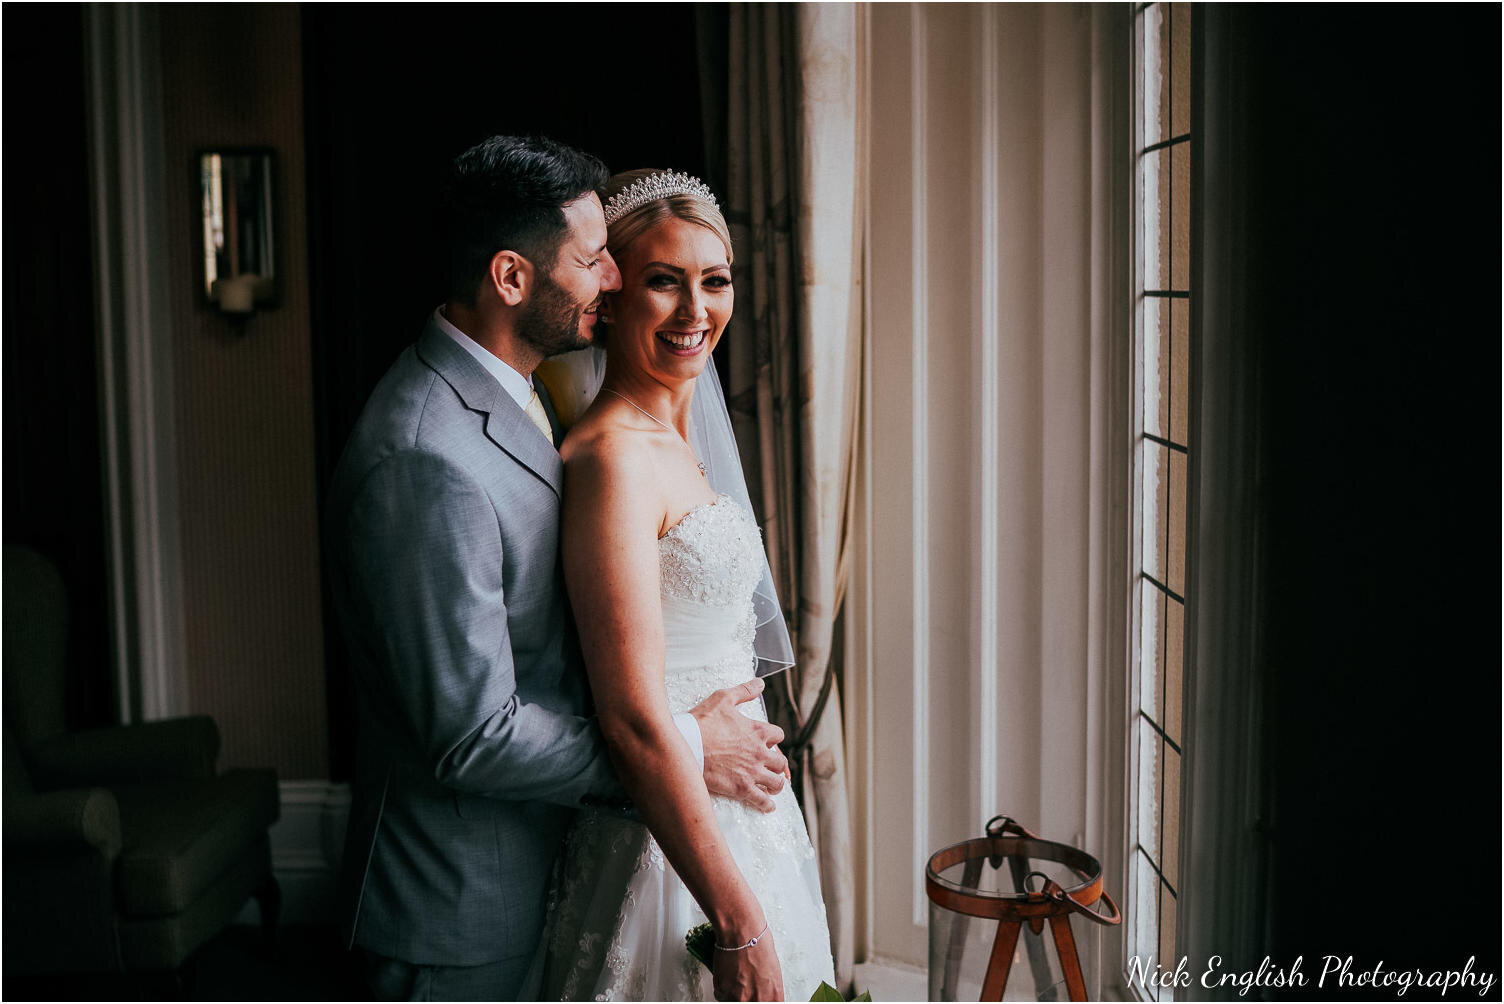 Falcon_Manor_Yorkshire_Wedding_Photographer-66.jpg